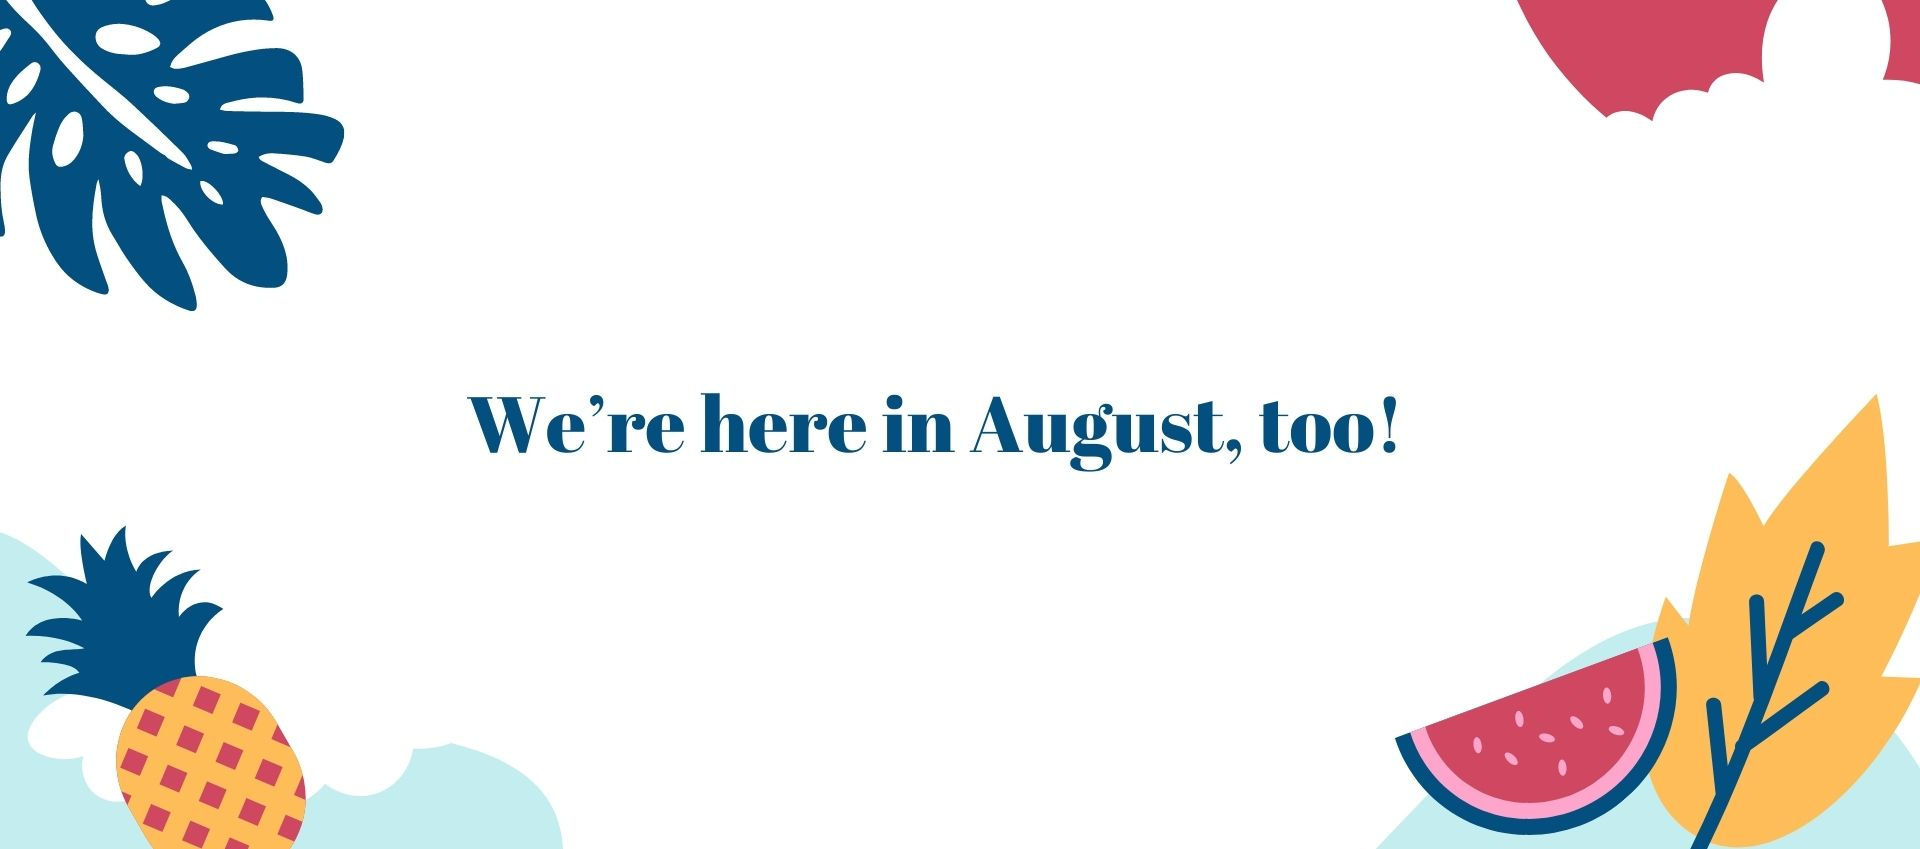 We're here in August, too!